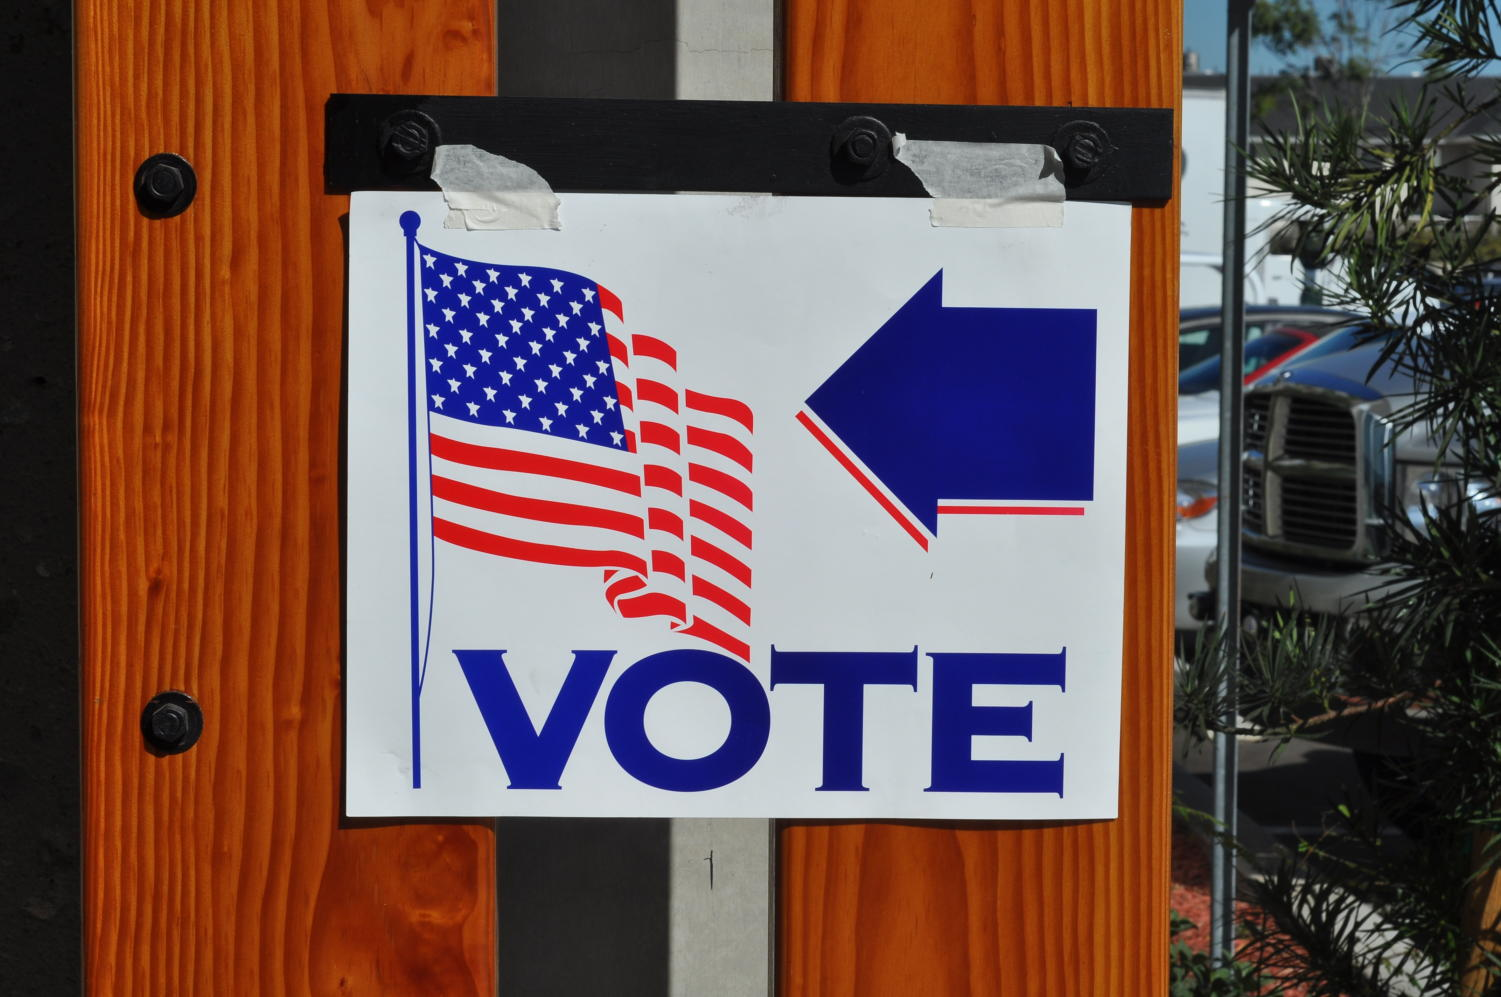 A sign points to a nearby polling place in California. The Voter's Choice Act makes it easier for voters to cast their ballots.